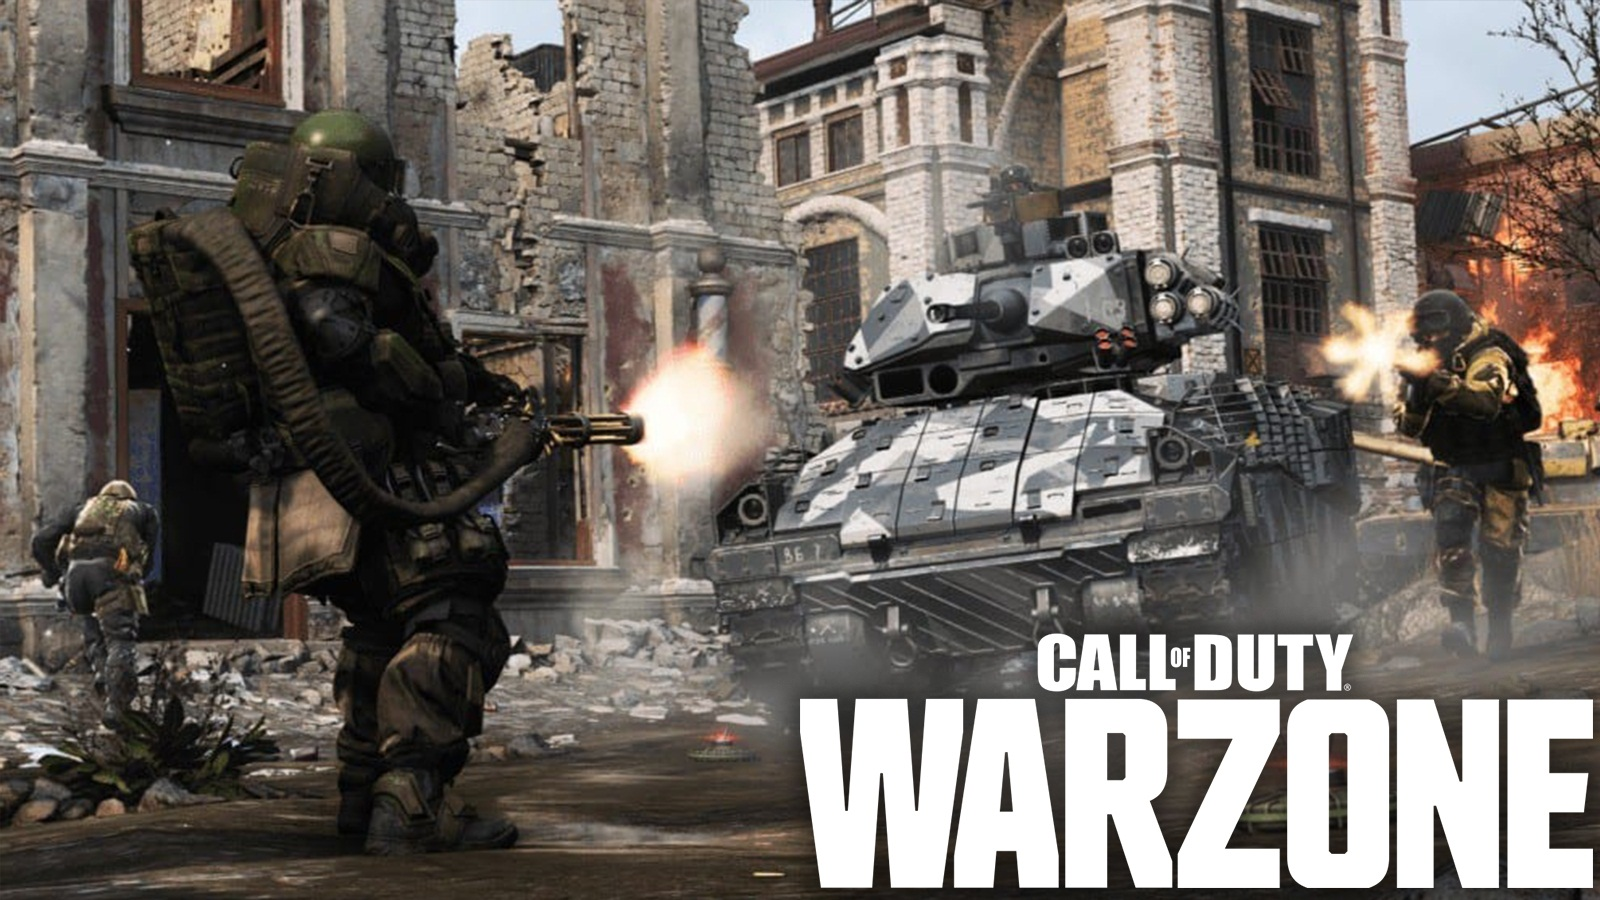 Maximize Your Playing Skills by 5 Major Tips in Call Of Duty: Warzone